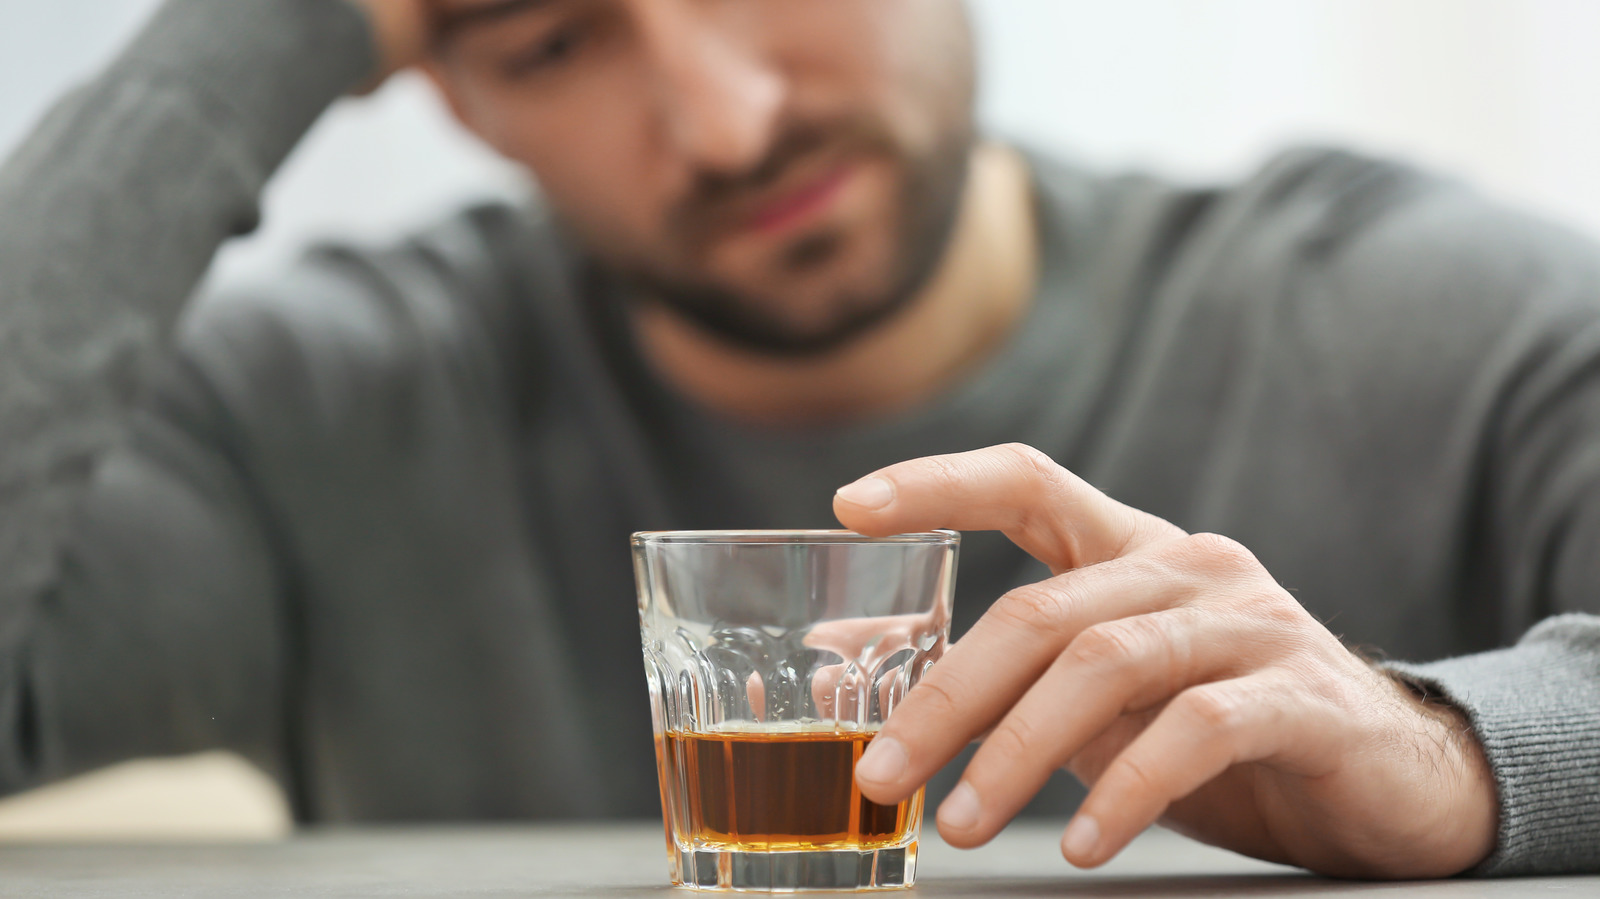 You Might Be Drinking Too Much If This Happens To You